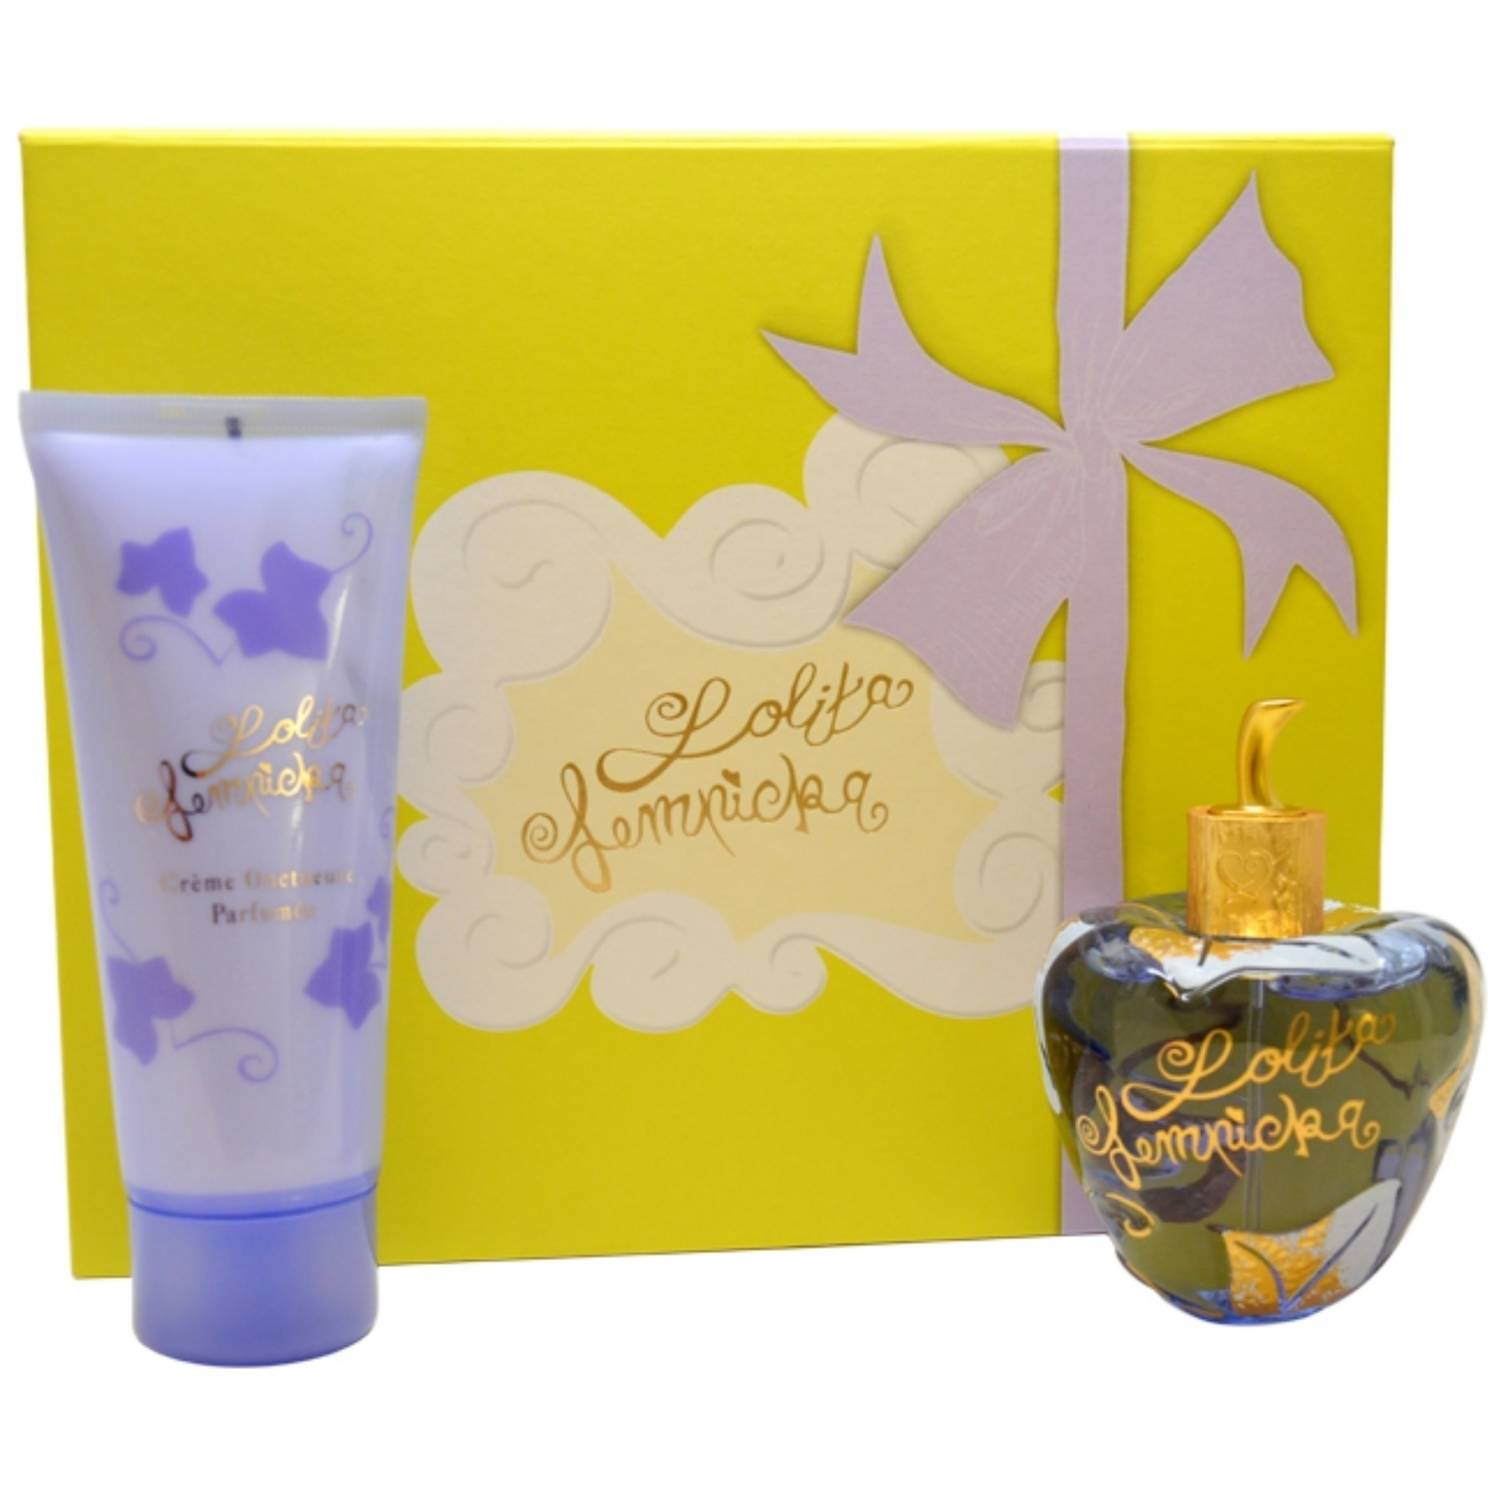 Lolita Lempicka Fragrance Gift Set, 2 pc